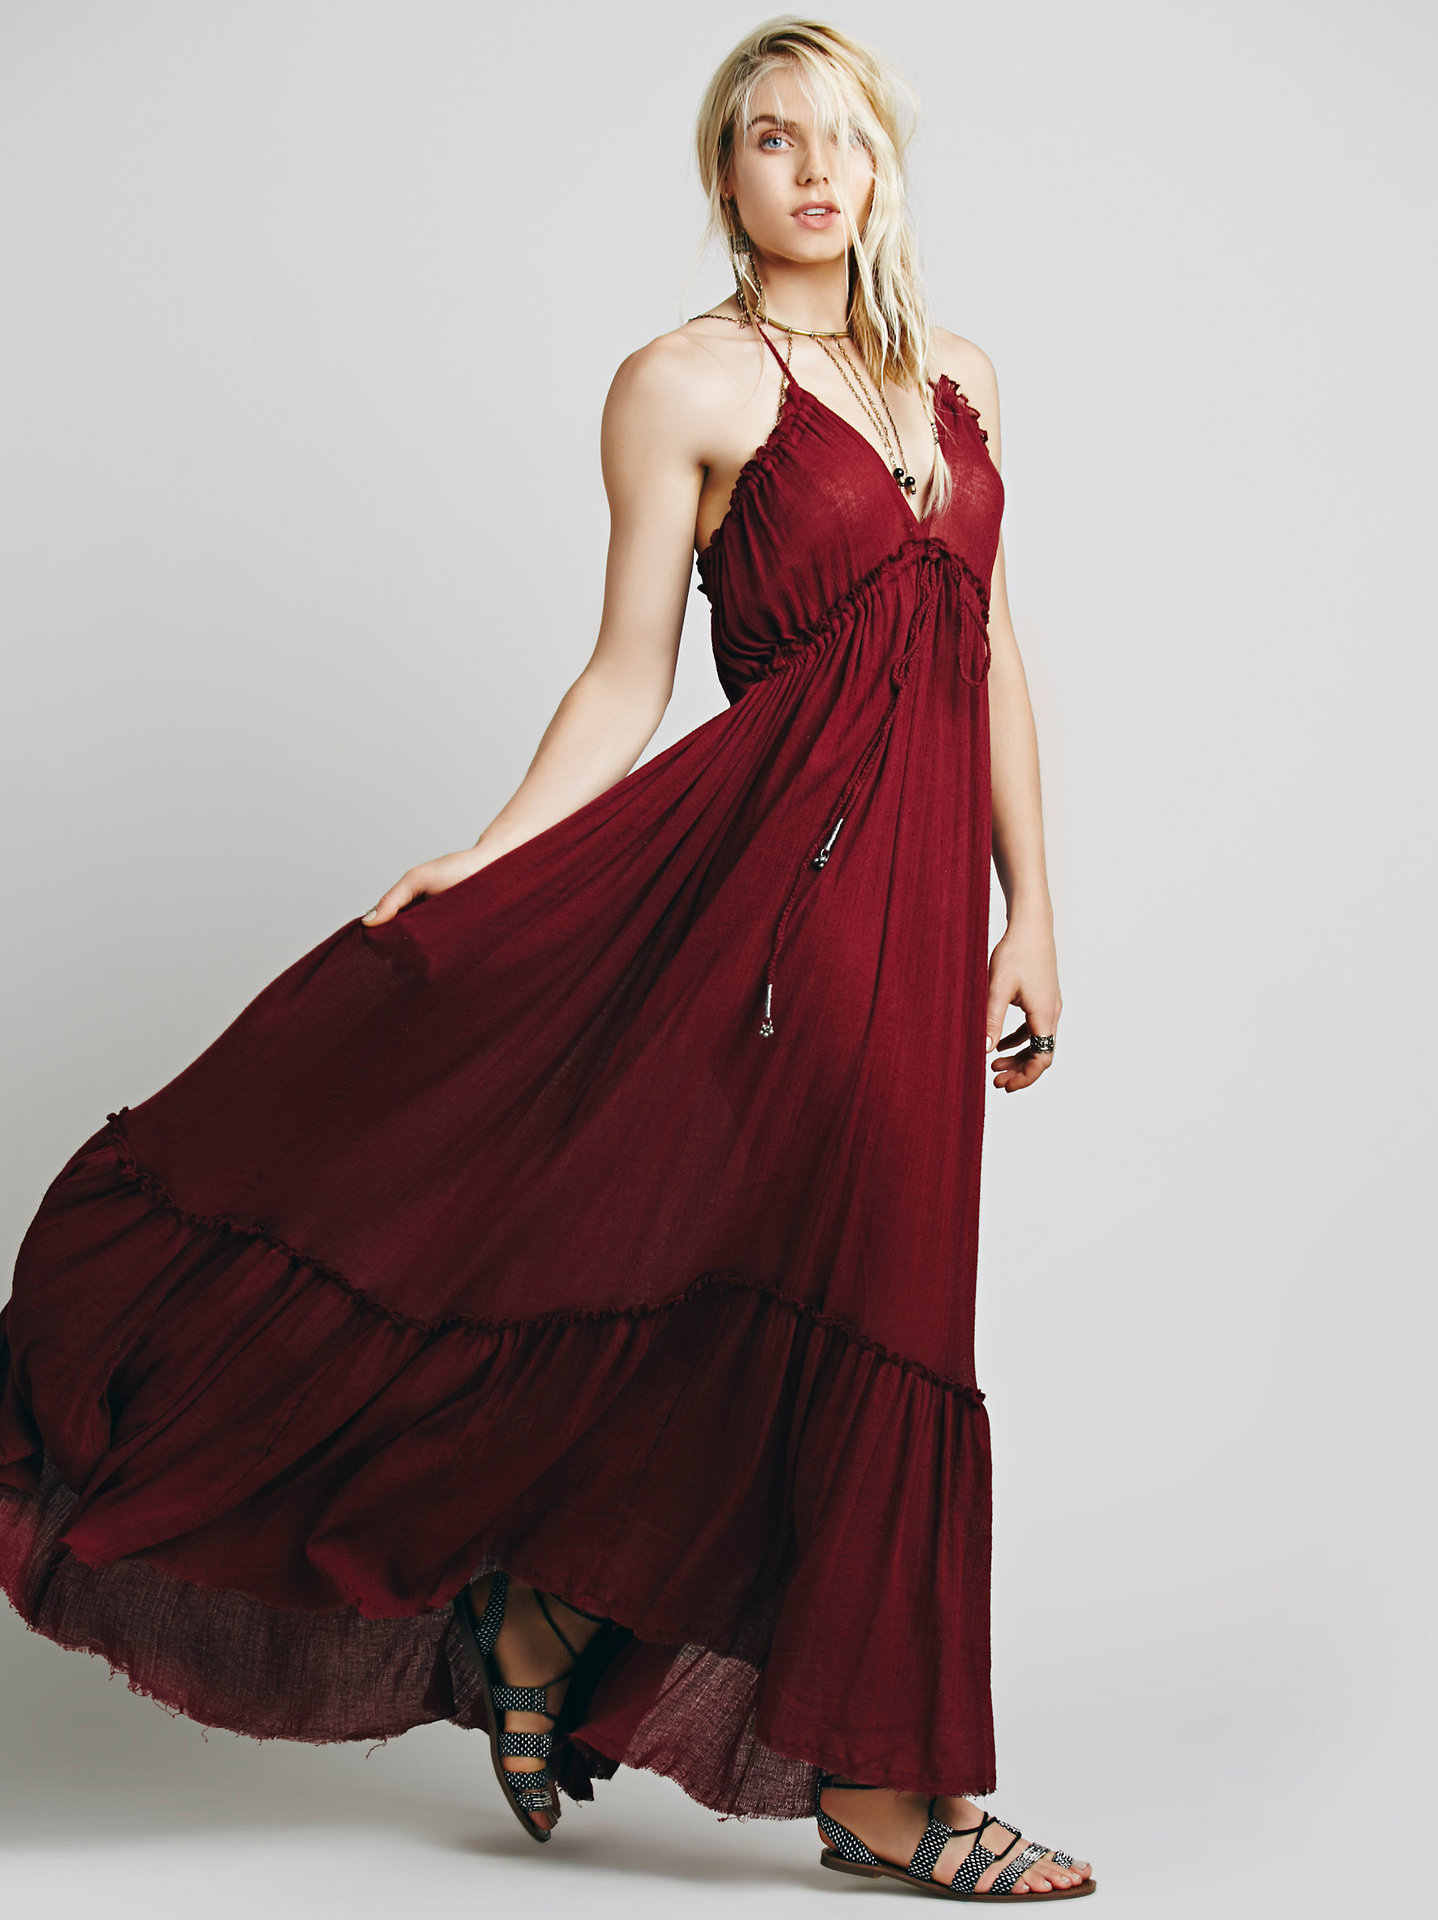 a90f0f8b9232f Detail Feedback Questions about Off Shoulder Red Sexy Backless Dress ...